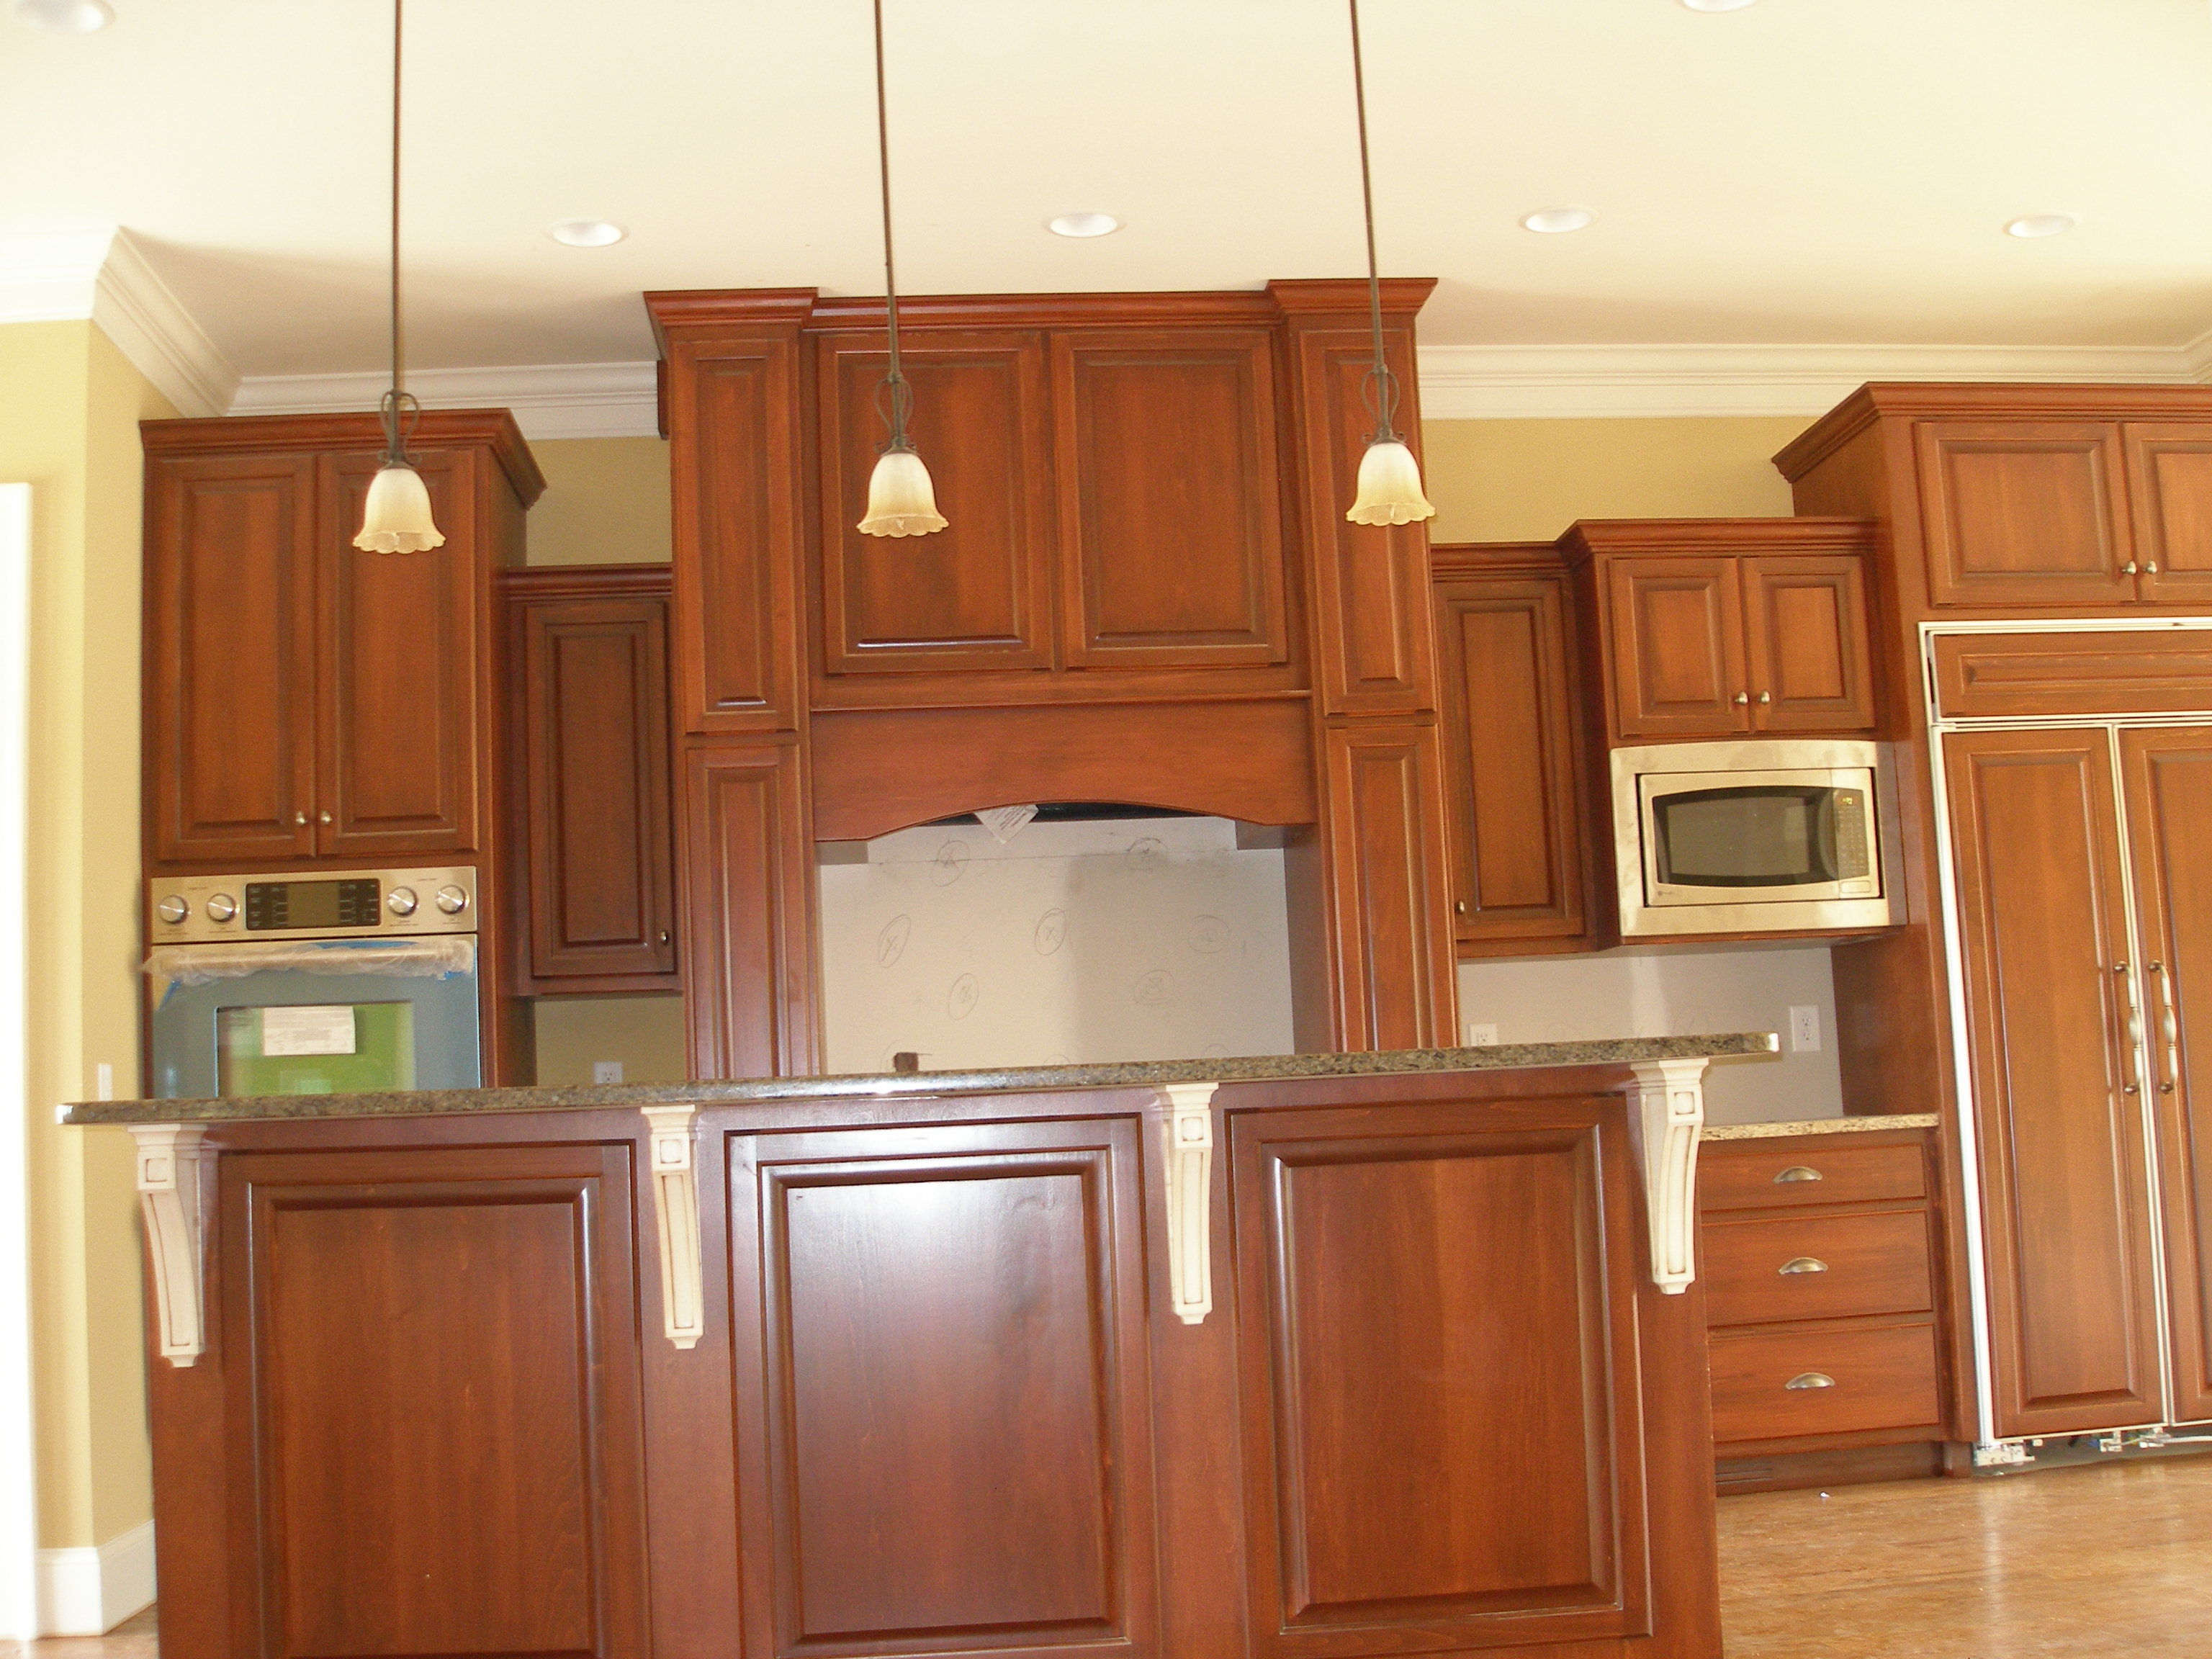 Lowes kitchen cabinets stock canada - The Best Types Of Wood For Building Cabinets The Basic Woodworking